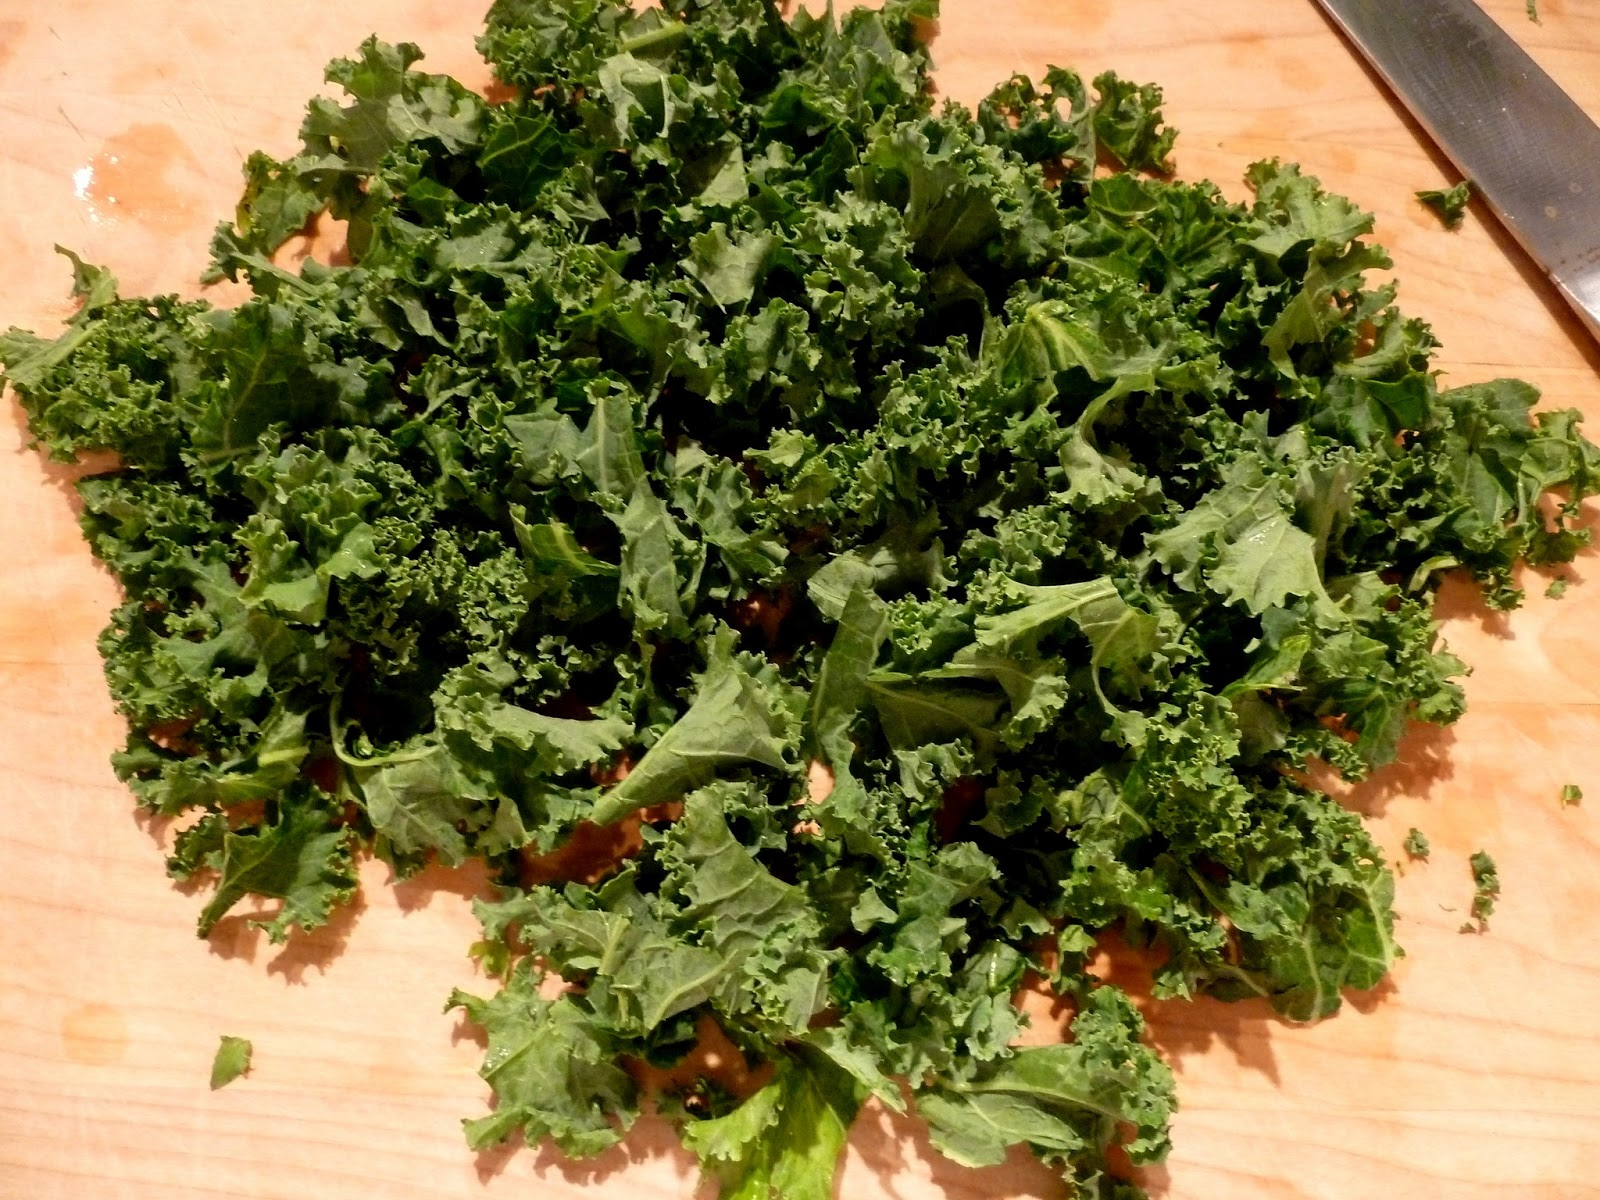 In addition to farro and kale, the salad contains cherry tomatoes ...